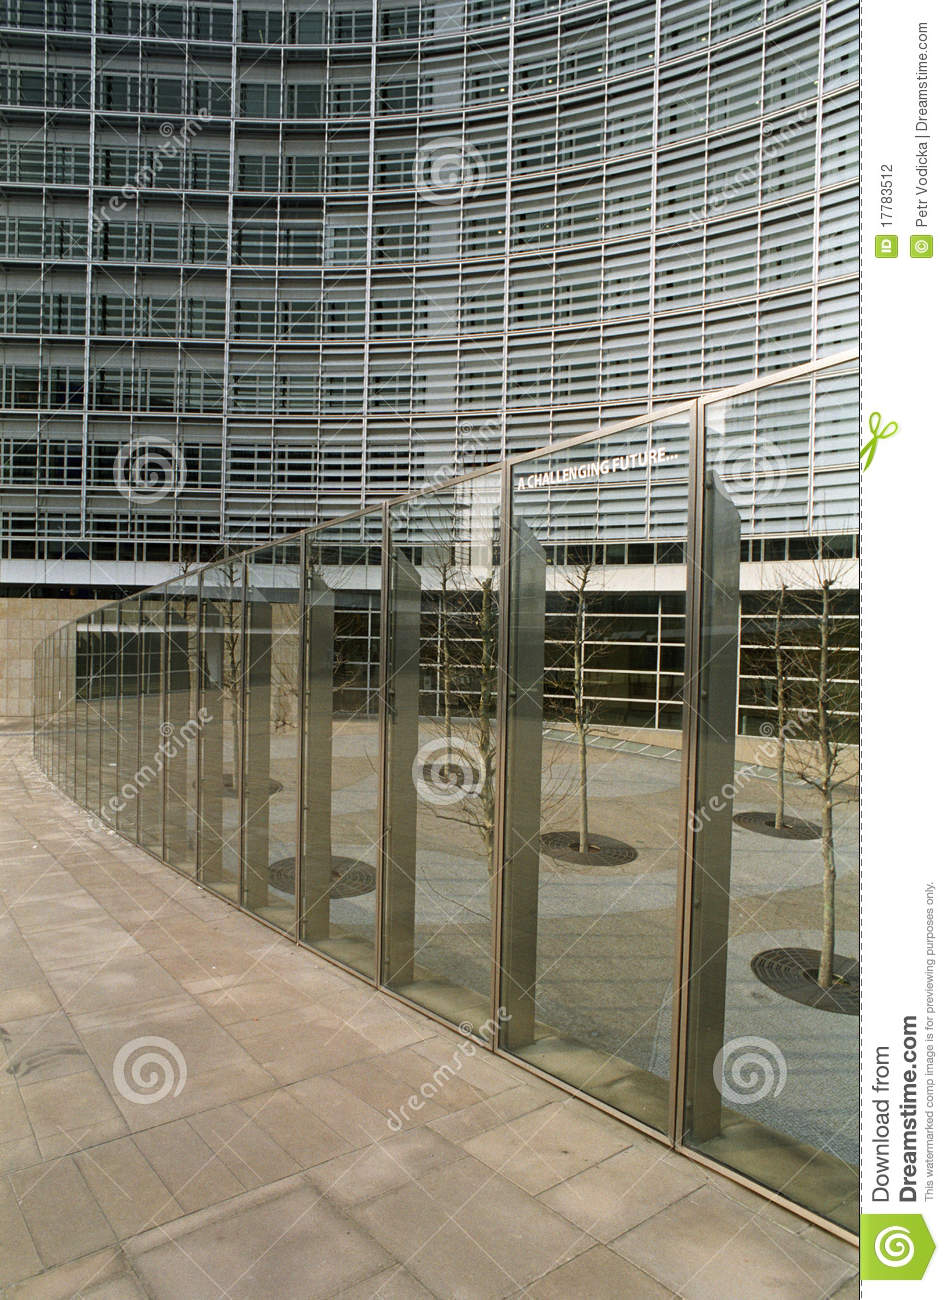 European commission offices in the brussels stock photography image 17783512 - European commission office ...